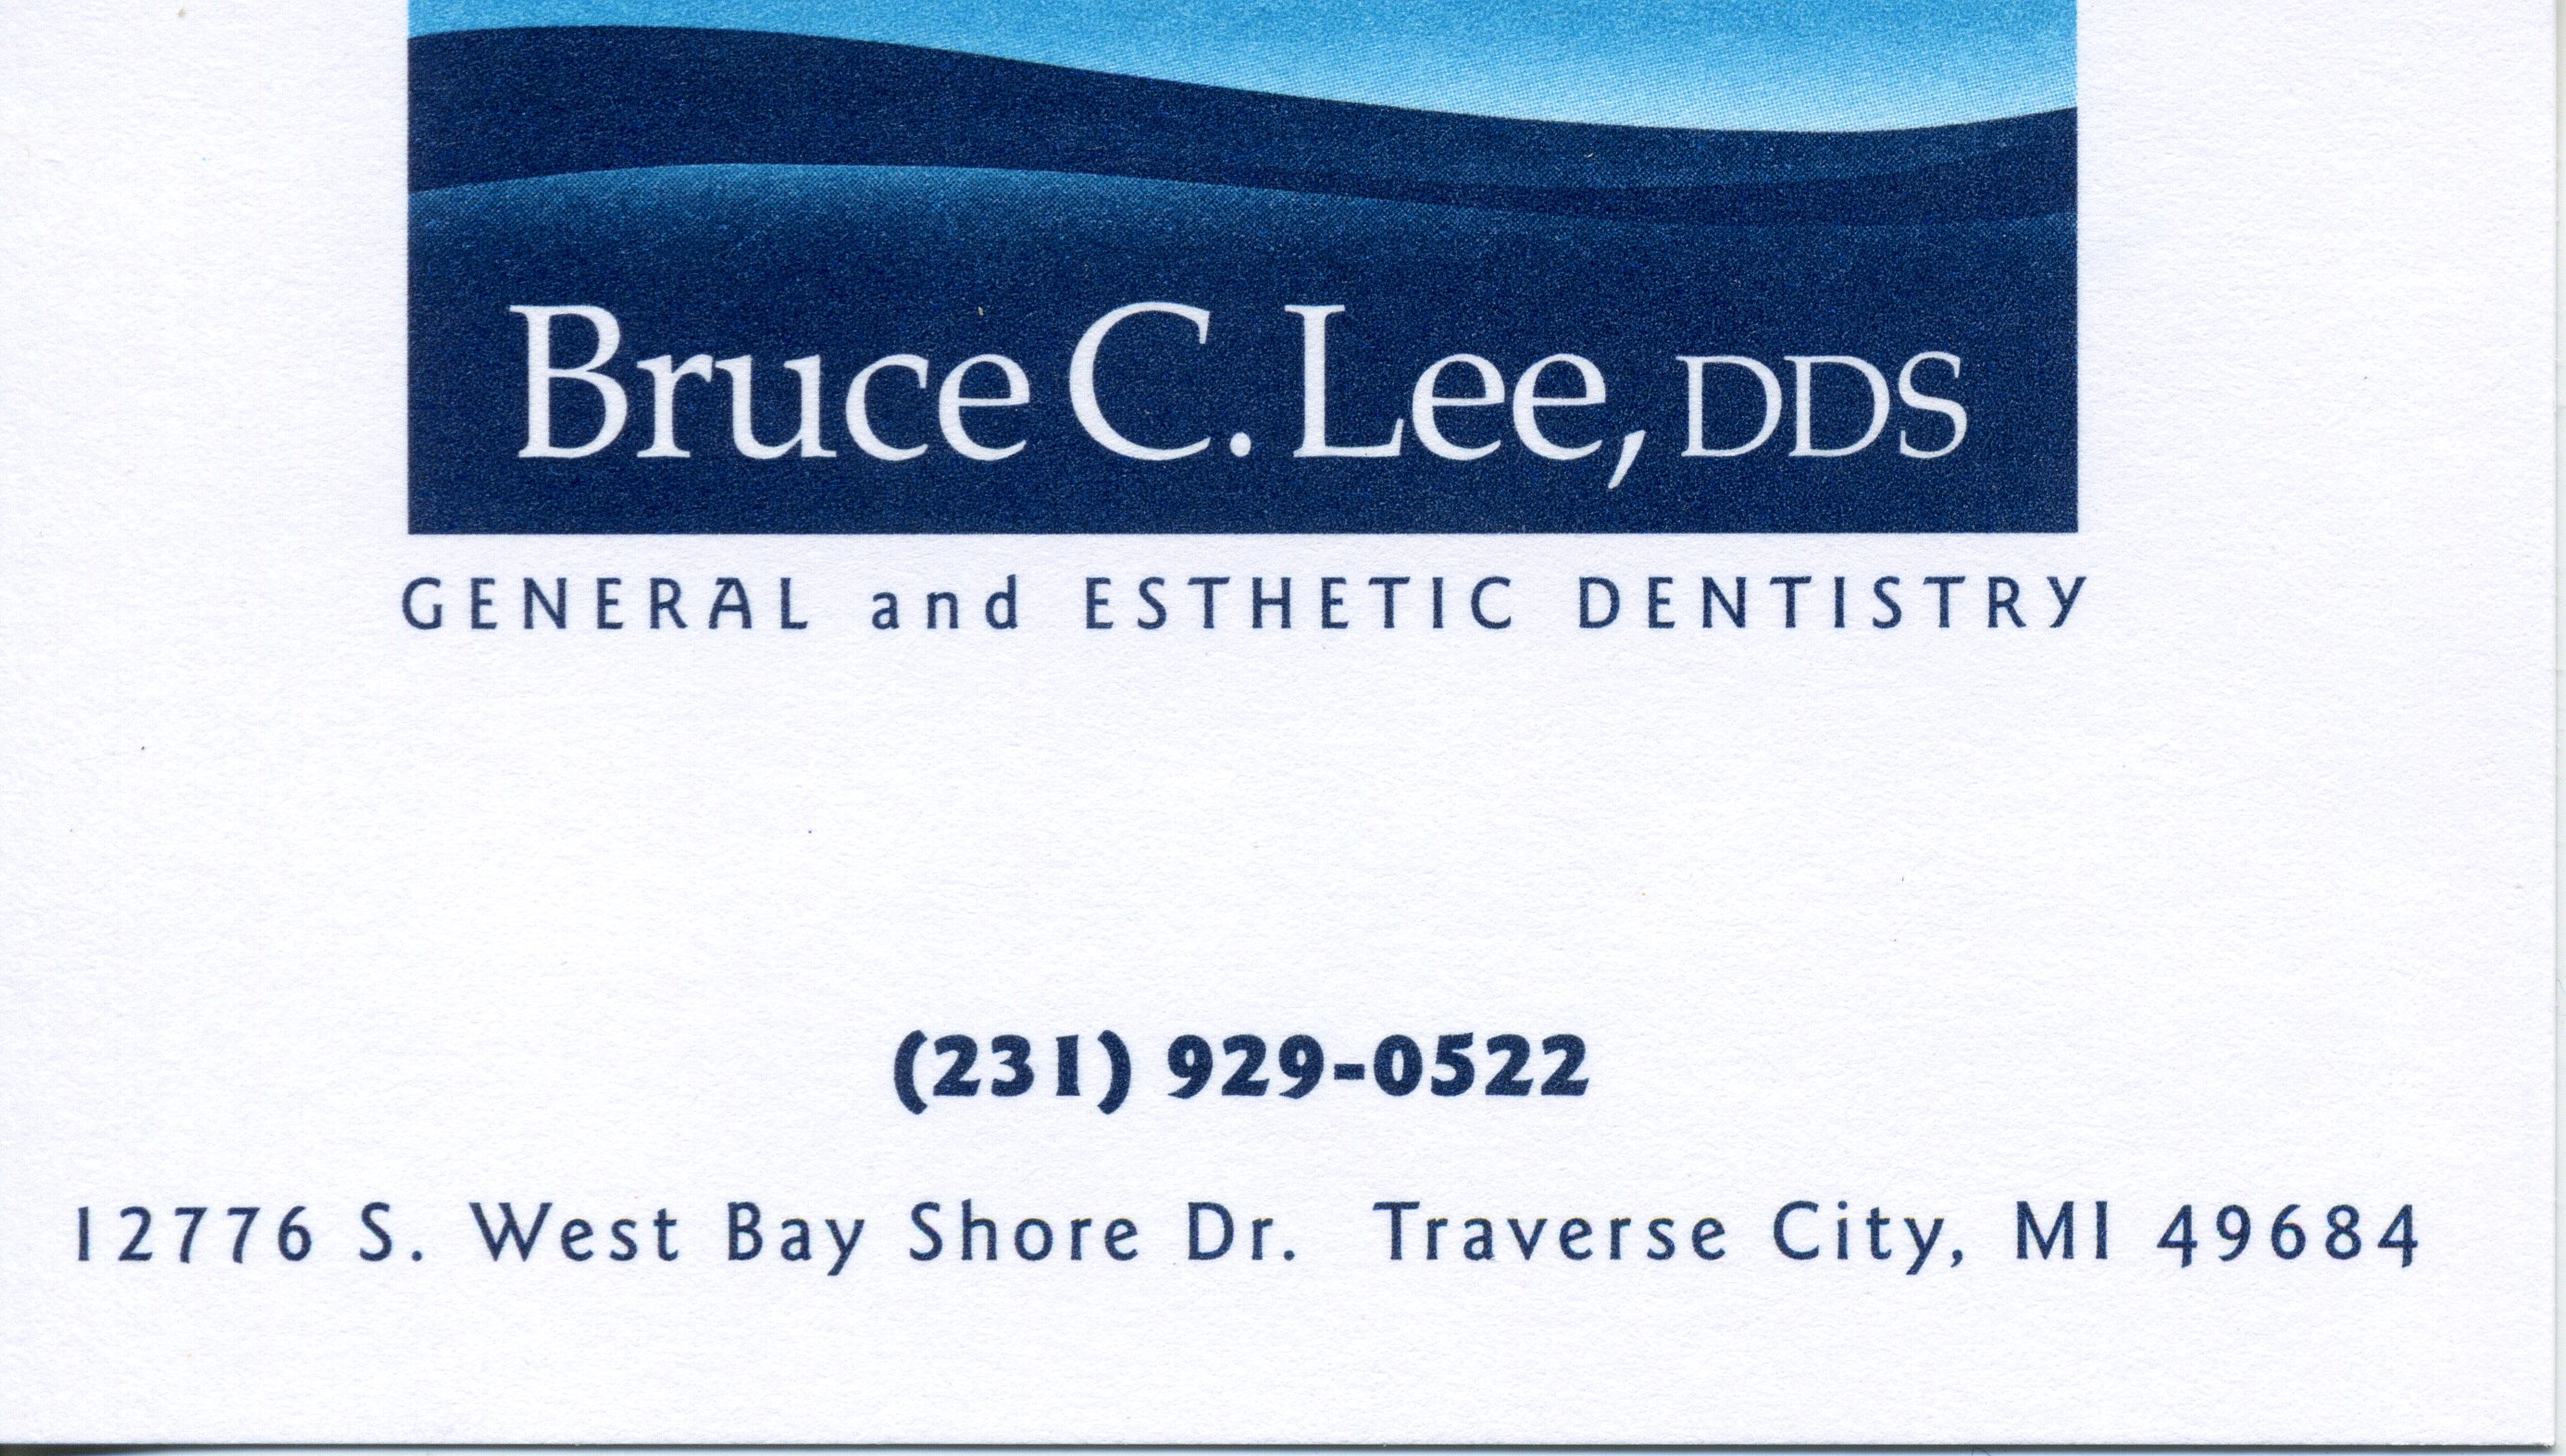 Way to go keeping my favorite river clean.  Thanks!  Dr. Bruce Lee